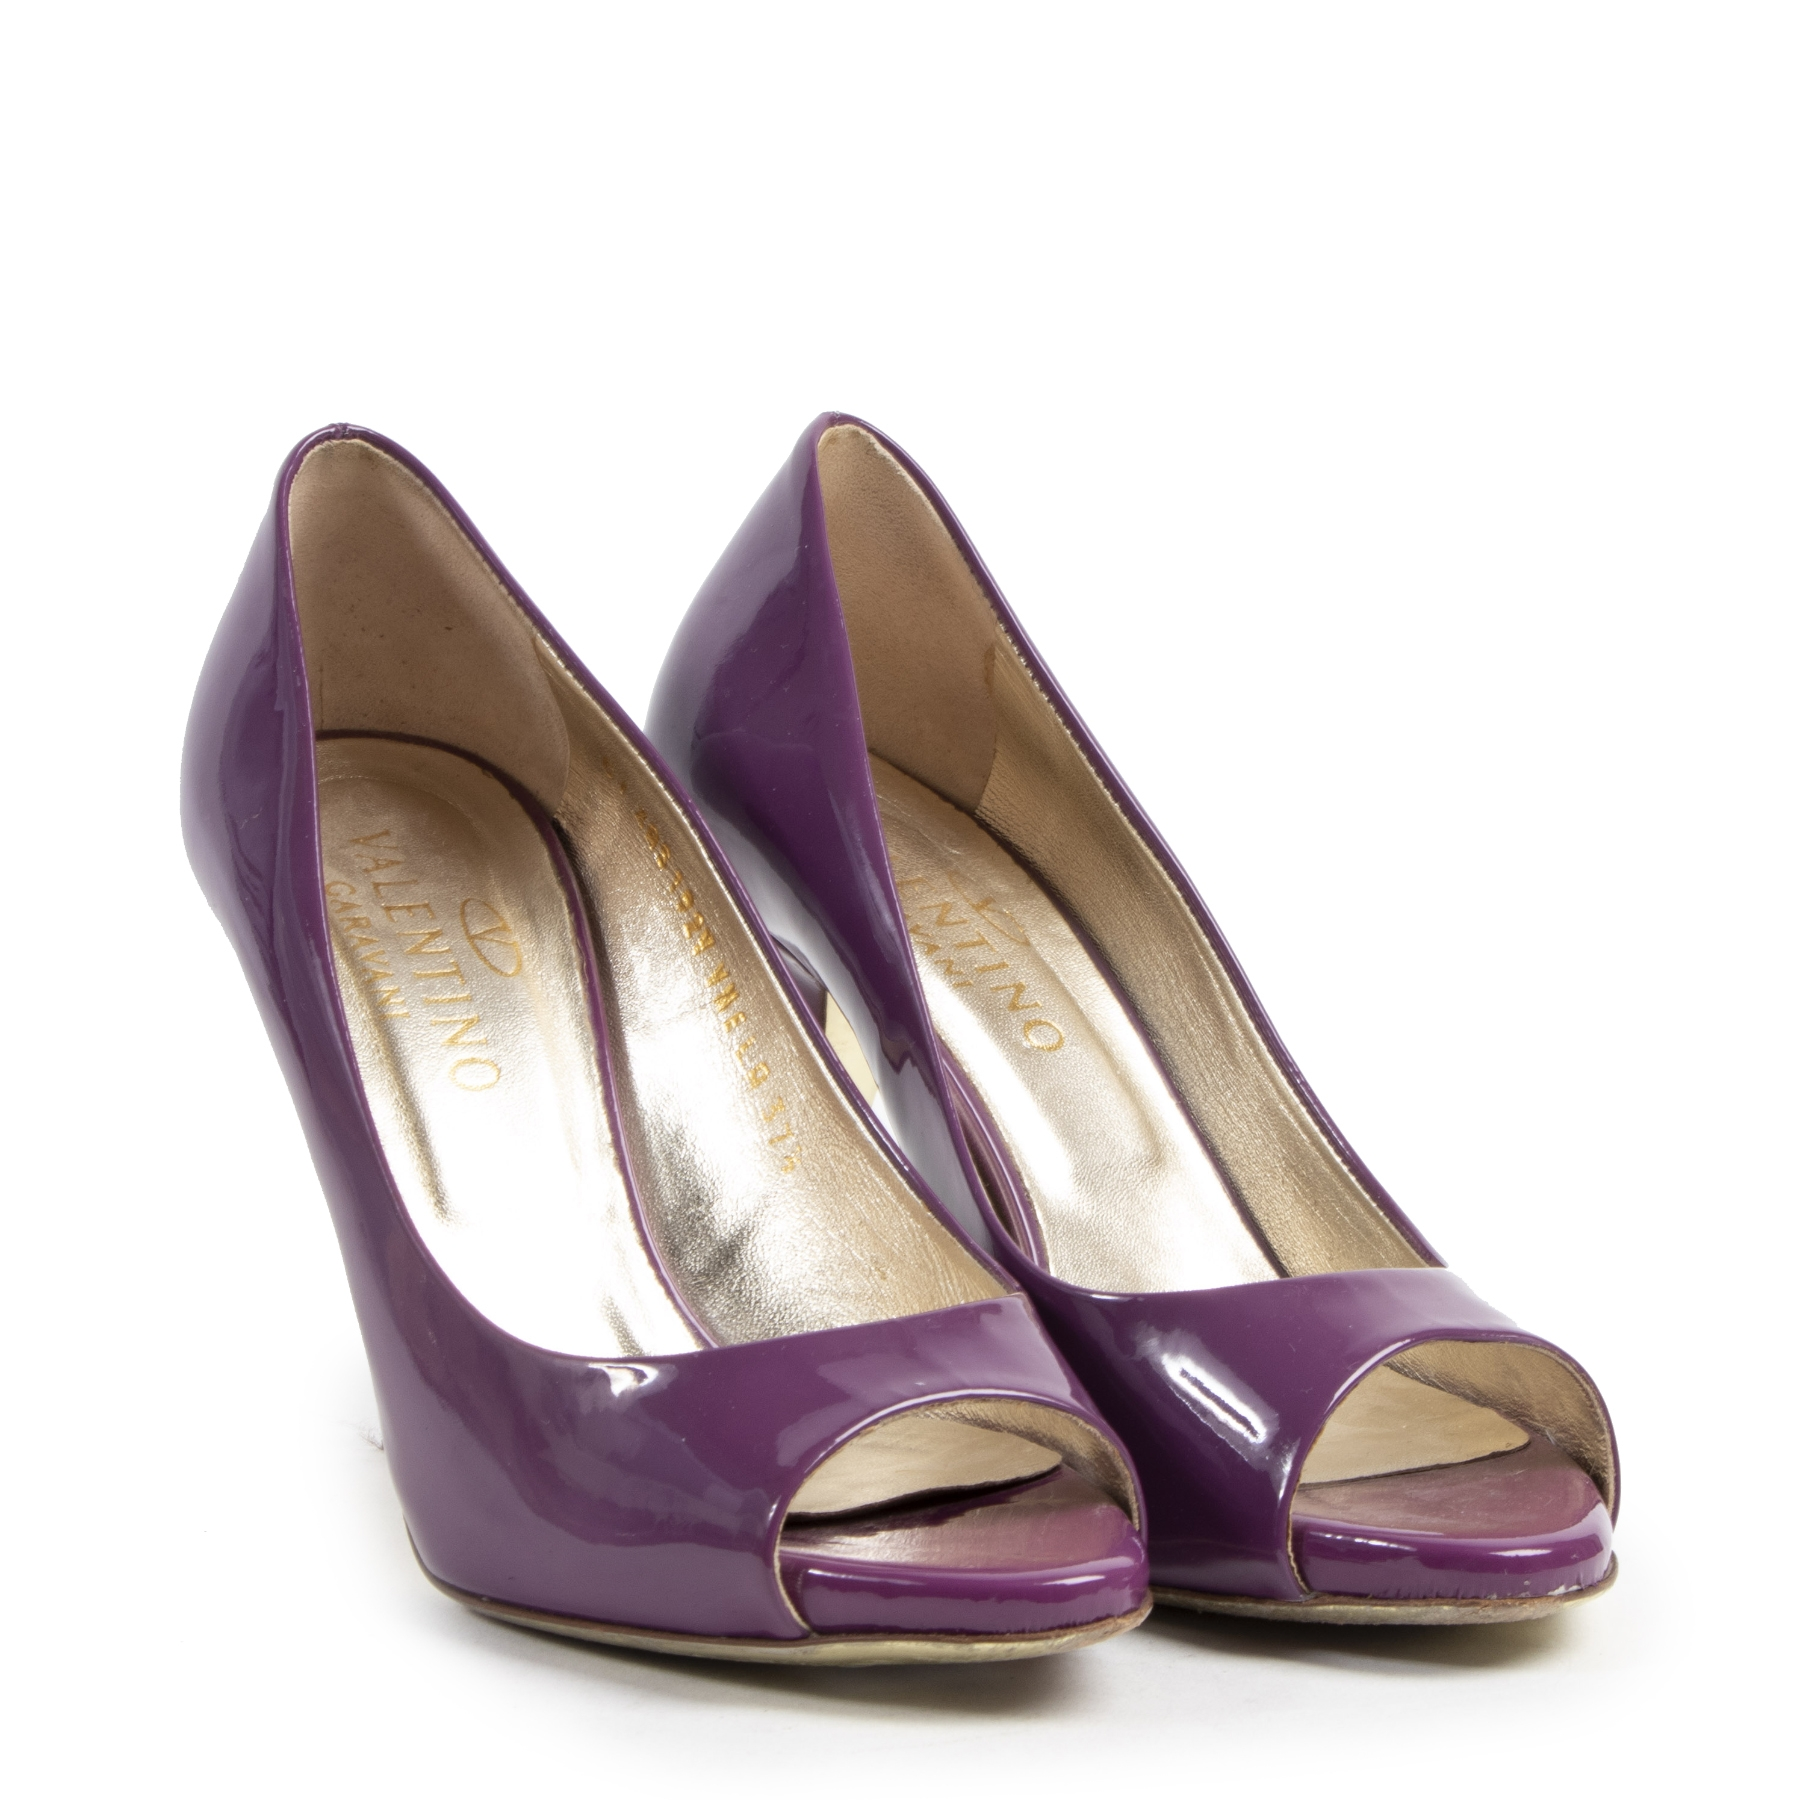 Authentique seconde-main vintage Valentino Purple Patent Pumps - Size 37,5 achète en ligne webshop LabelLOV